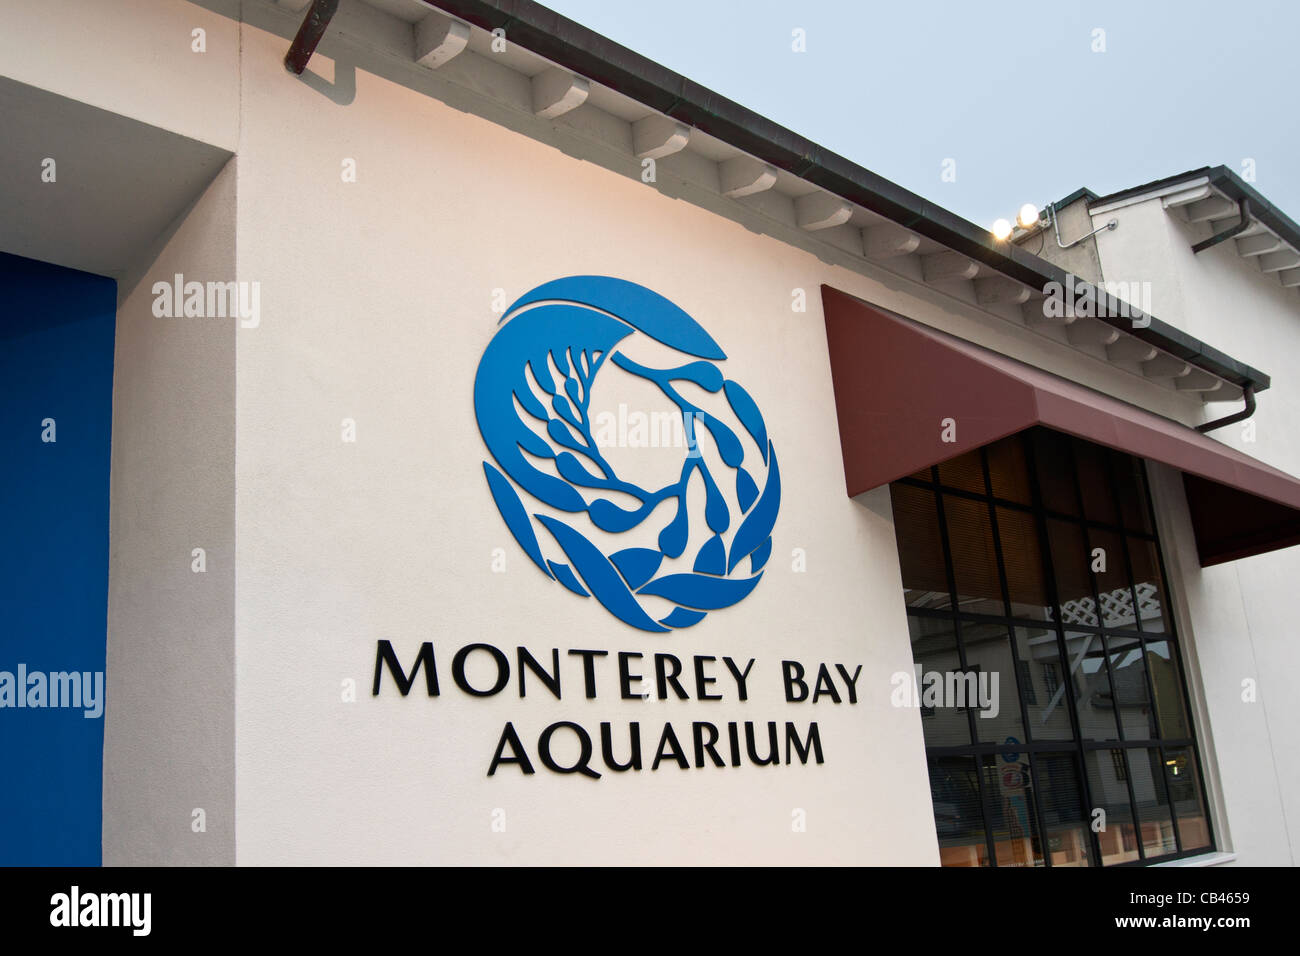 The entrance to the famous Monterey Bay Aquarium. - Stock Image